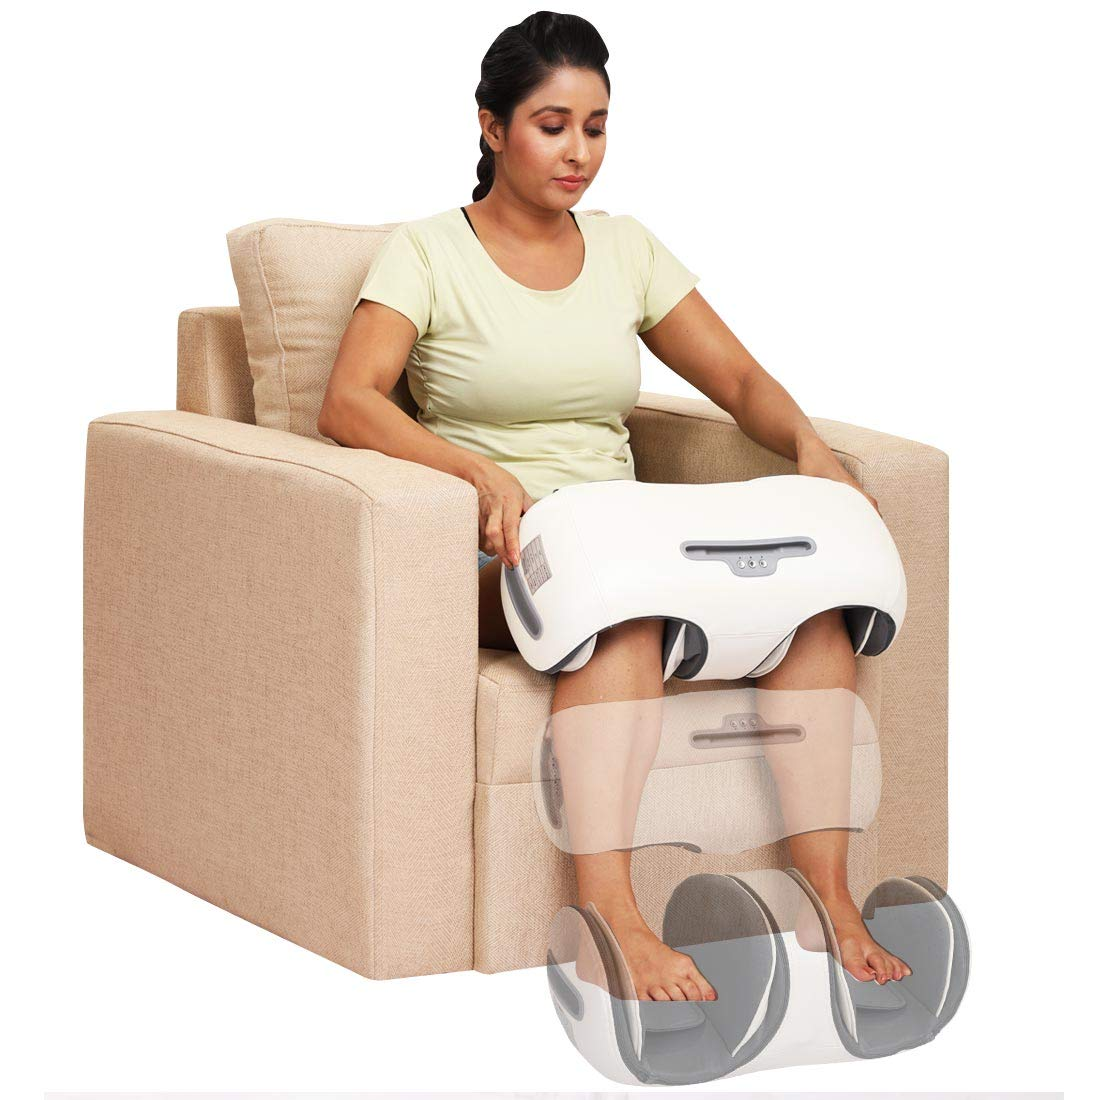 Best wireless knee joint massager